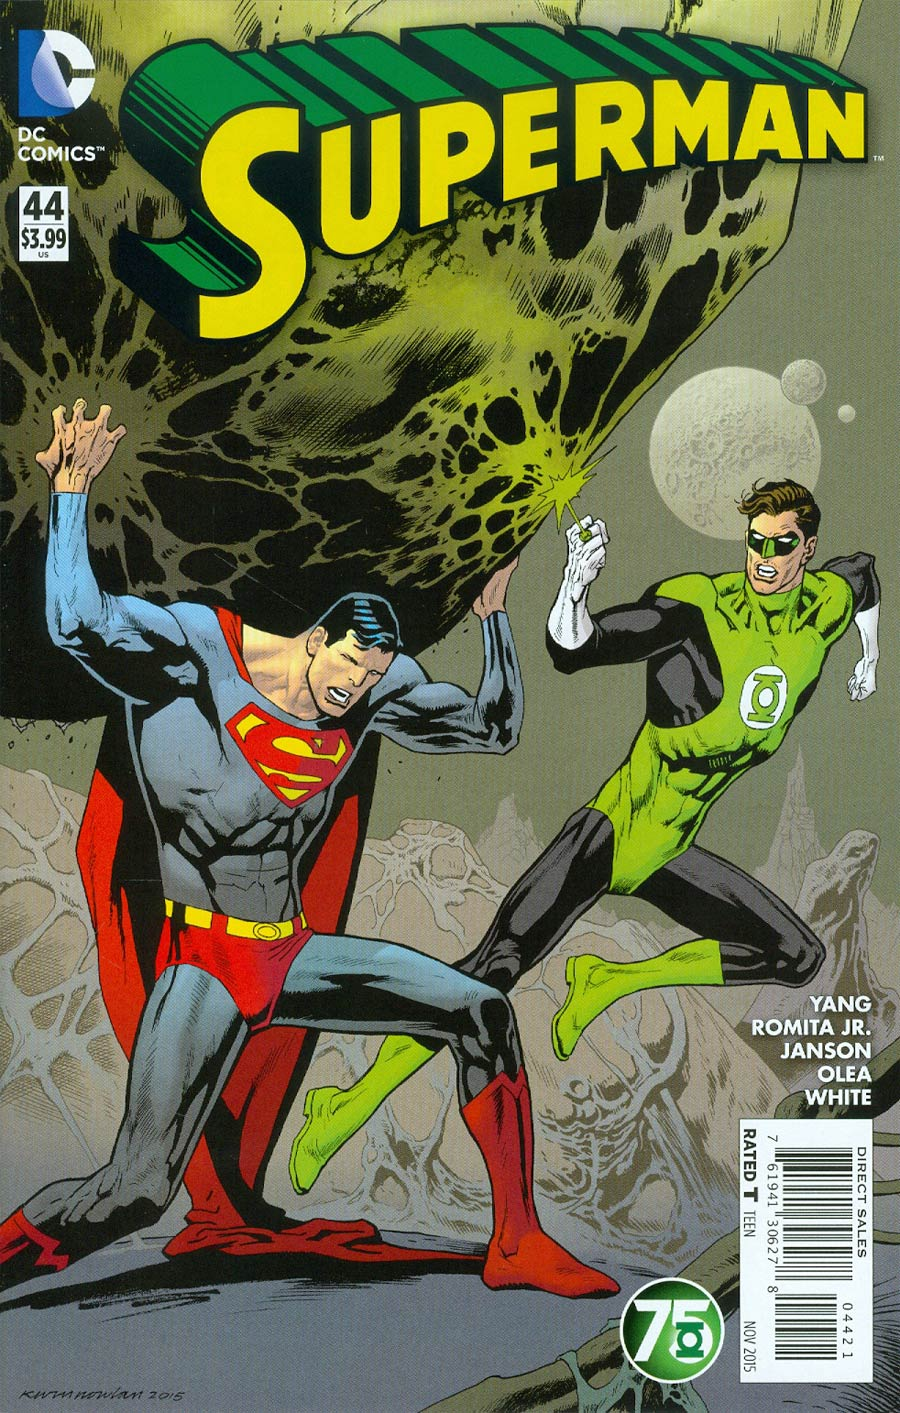 Superman Vol 4 #44 Cover B Variant Kevin Nowlan Green Lantern 75th Anniversary Cover (Truth Tie-In)